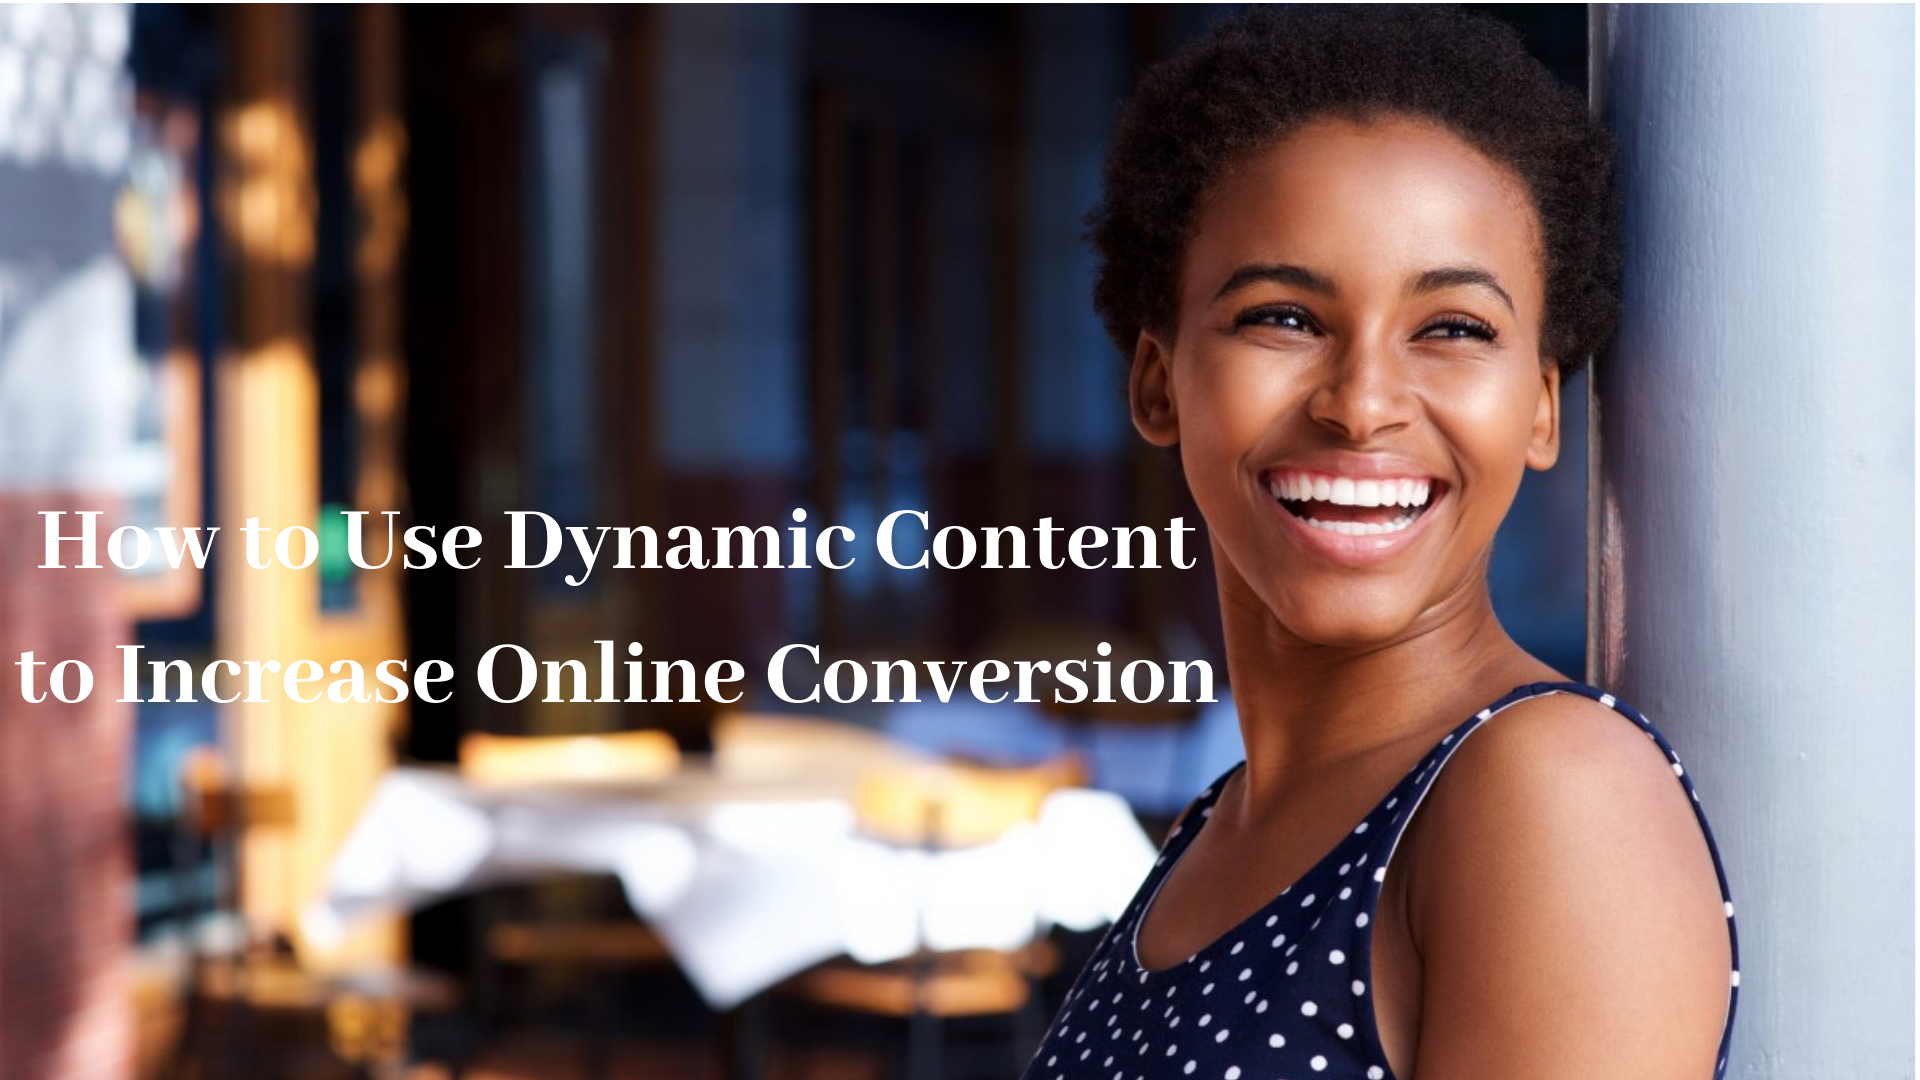 How to Use Dynamic Content to Increase Online Conversion